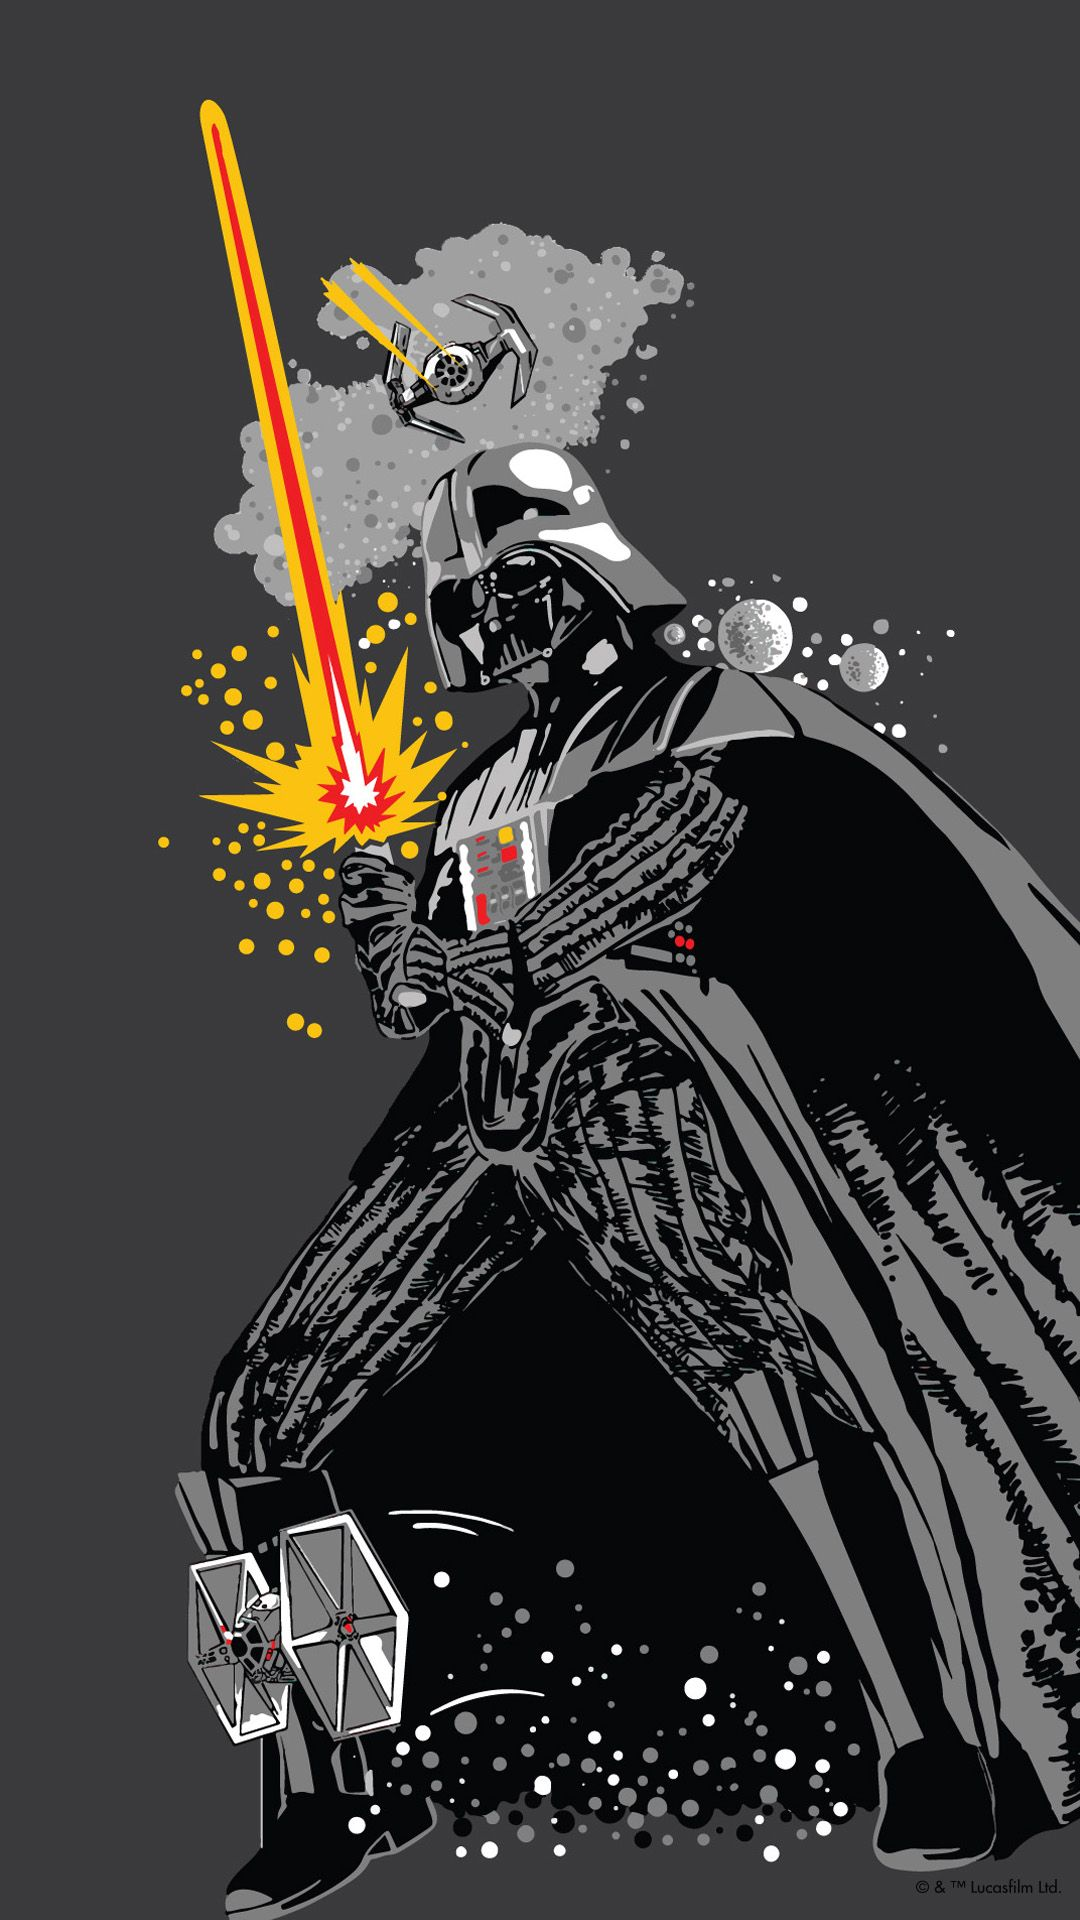 Star Wars Iphone Backgrounds Images Star Wars Background Star Wars Wallpaper Star Wars Poster